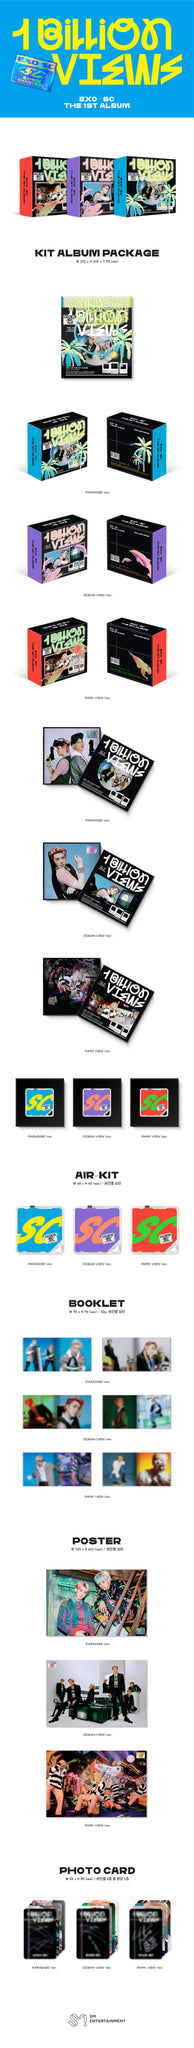 EXO-SC 1st Album - 10 Billion View (SET Ver.) 3Air-KiT + 3Poster